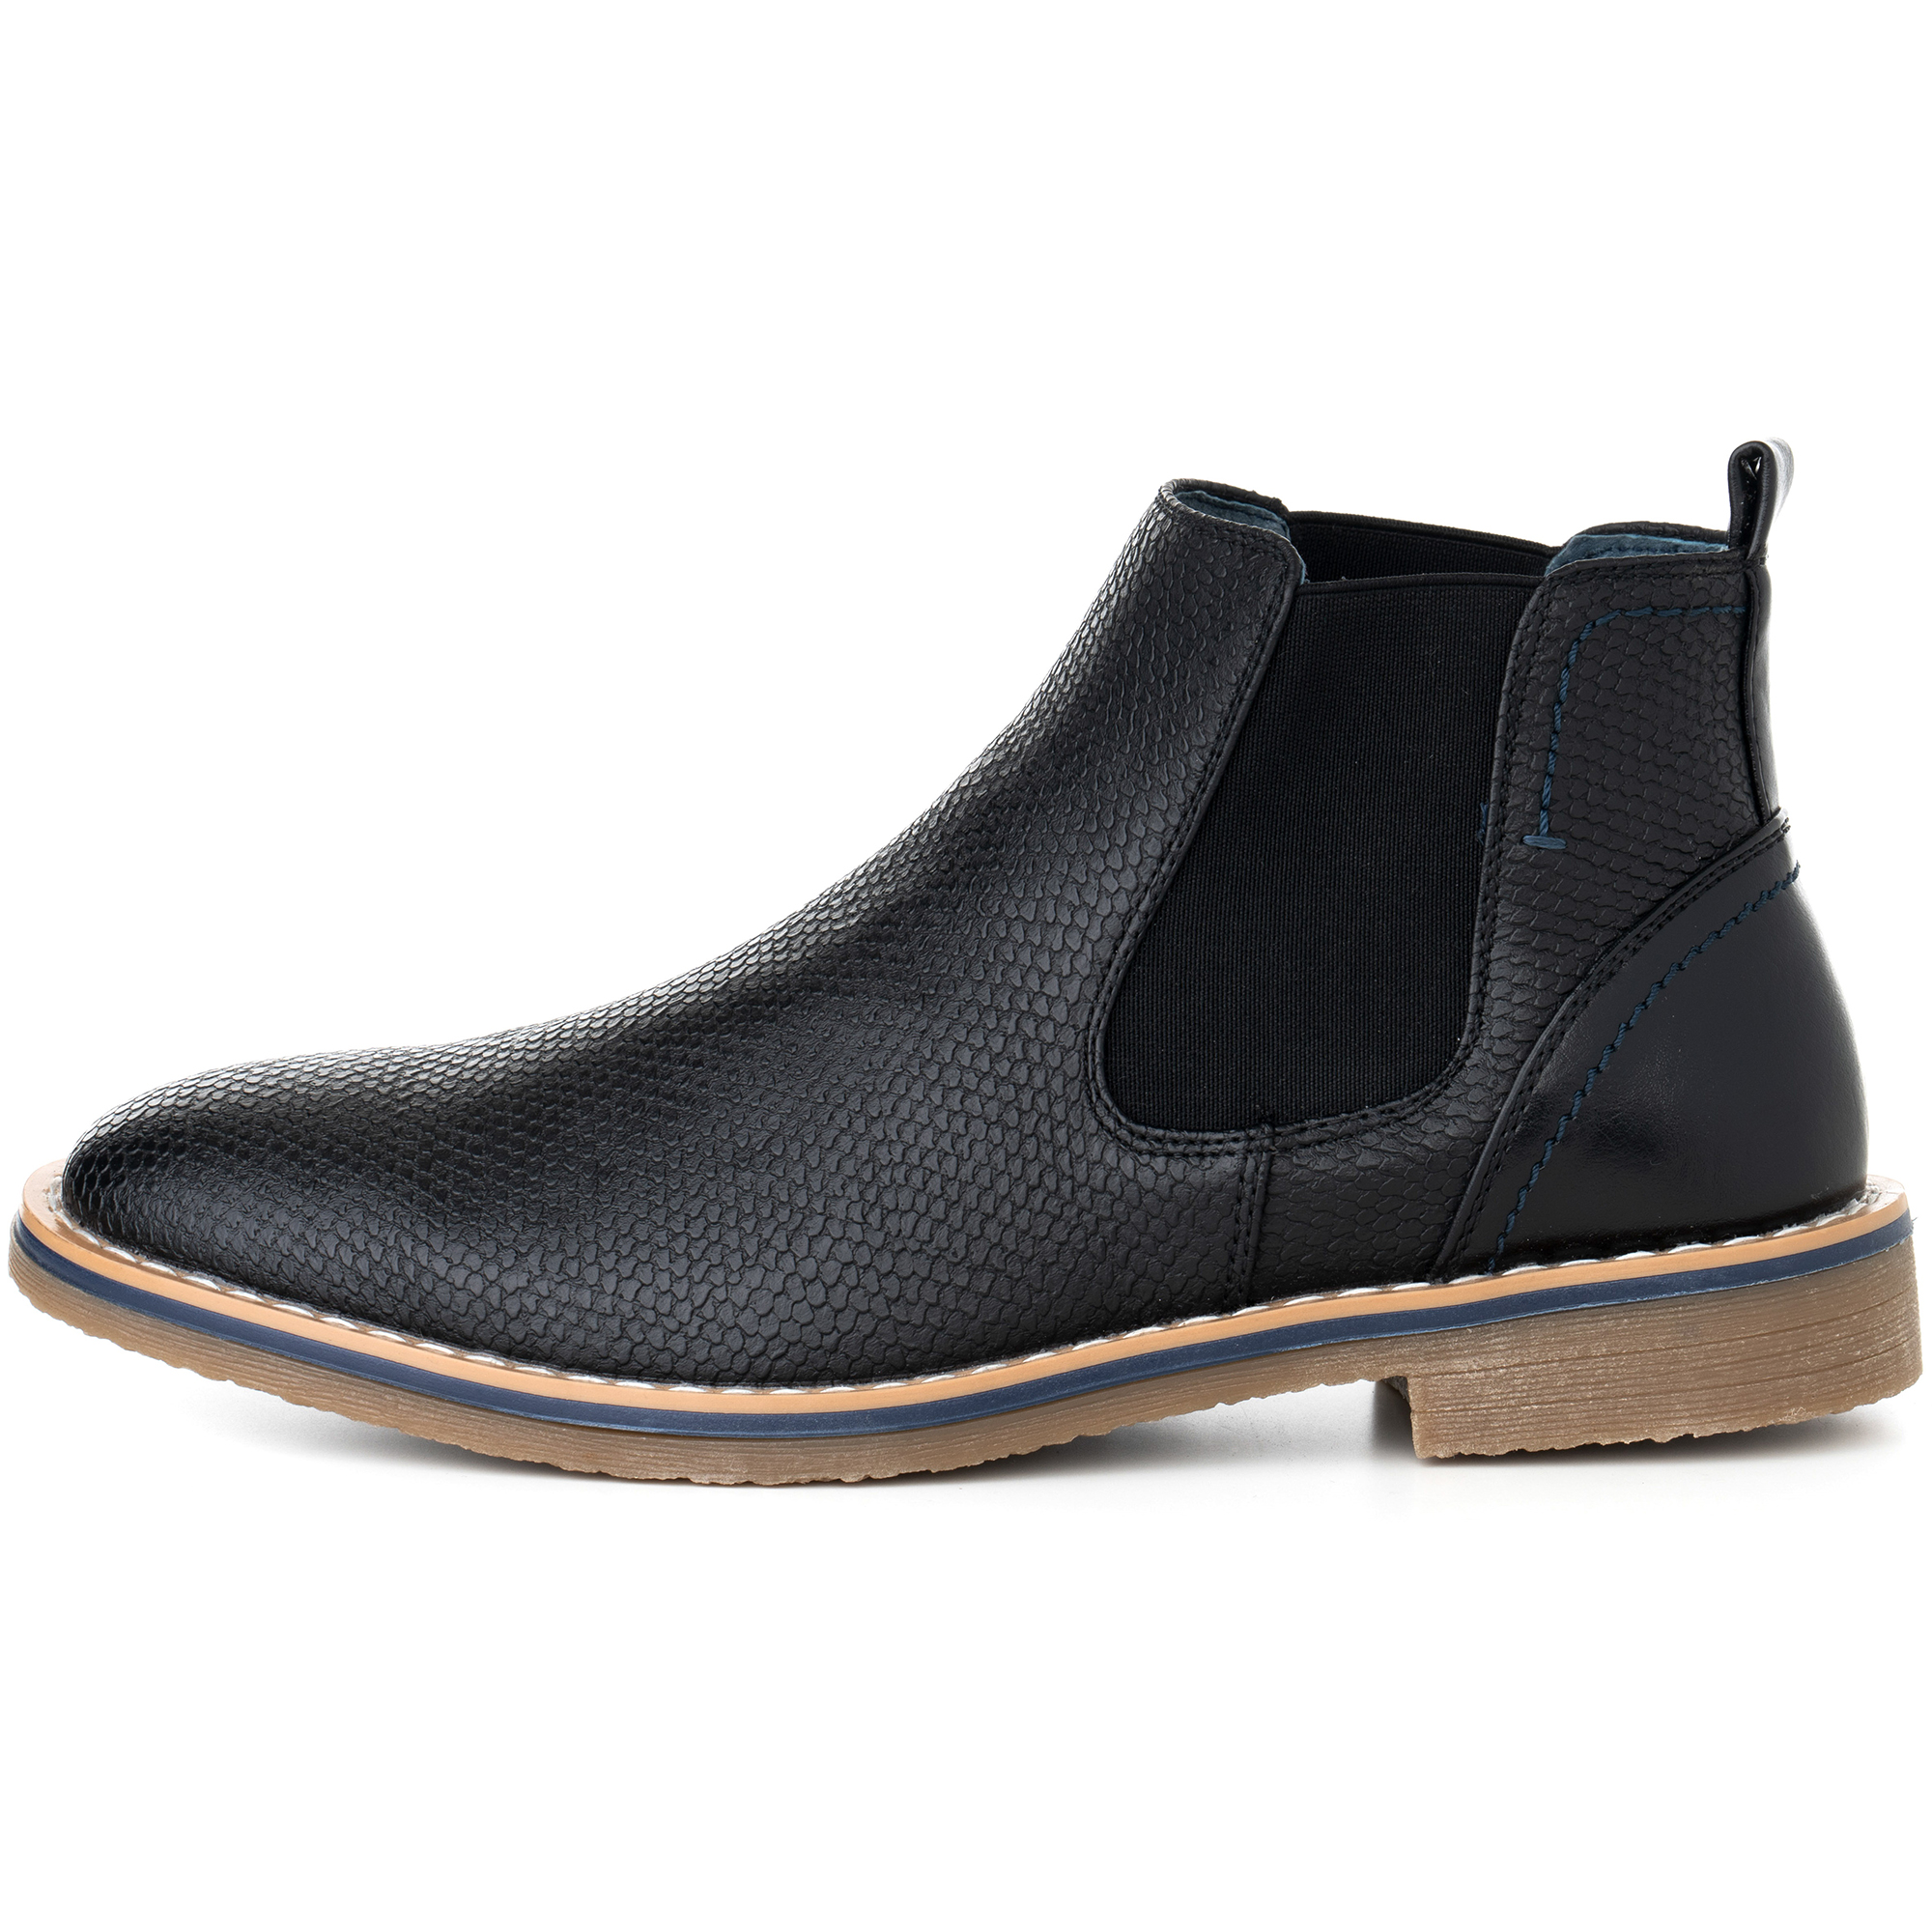 Alpine-Swiss-Mens-Nash-Chelsea-Boots-Snakeskin-Ankle-Boot-Genuine-Leather-Lined miniature 12